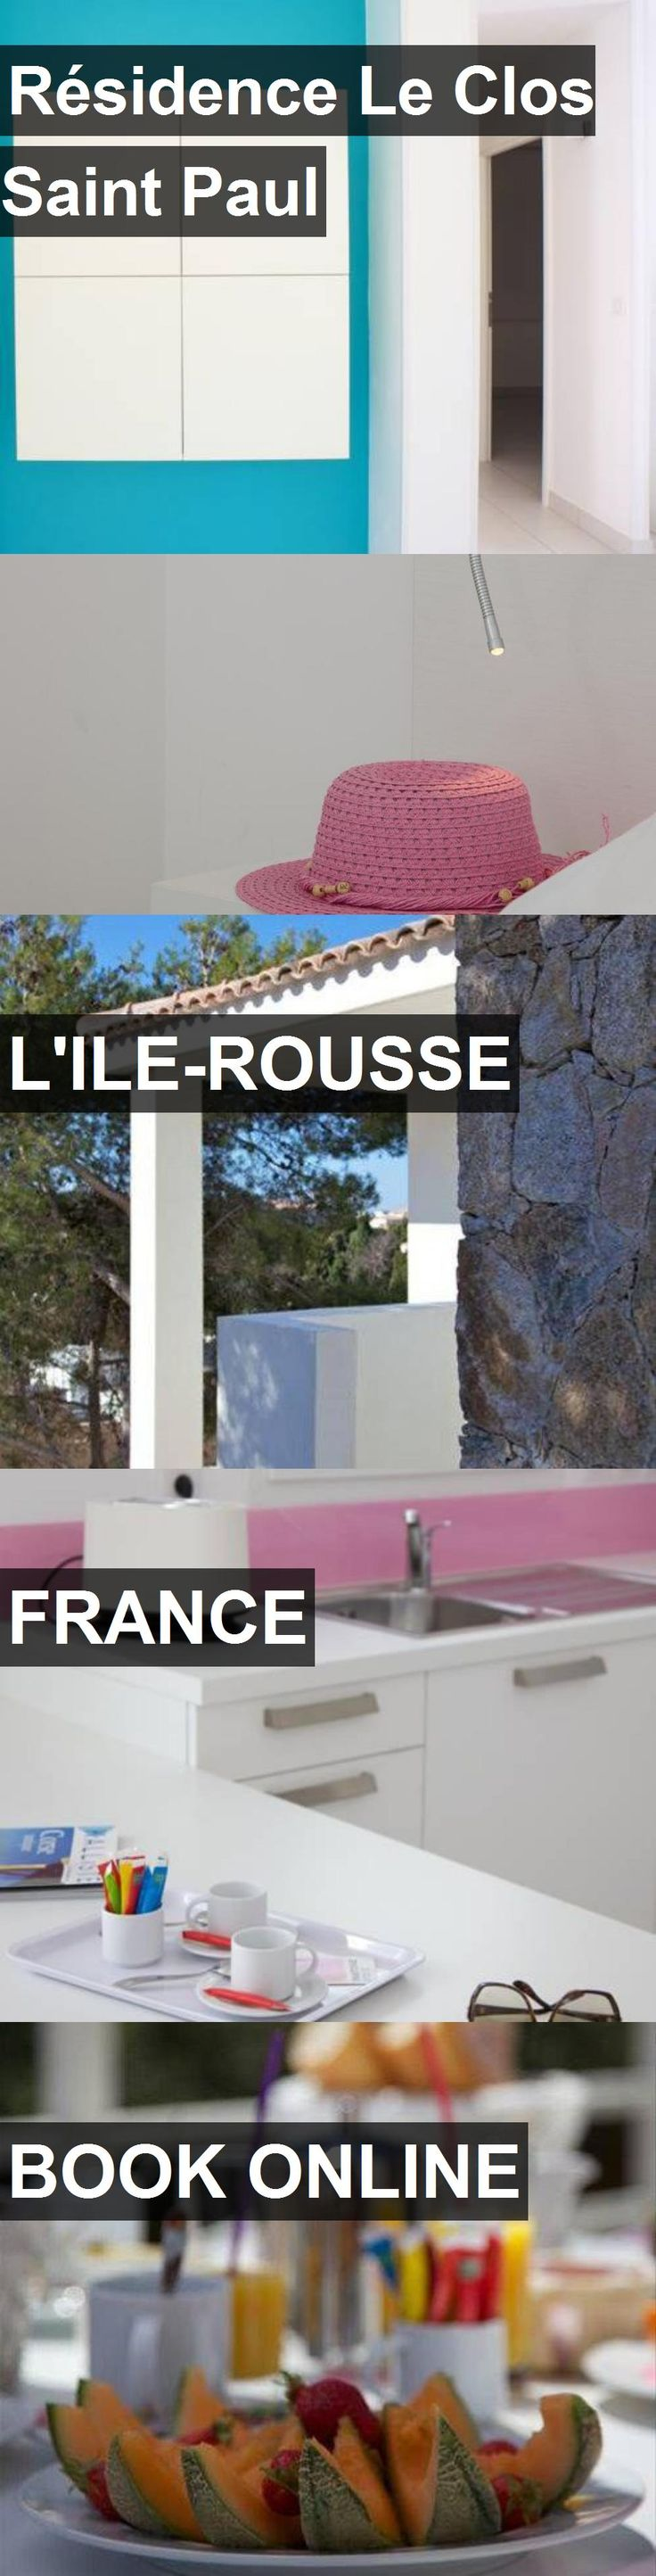 Hotel Résidence Le Clos Saint Paul in L'Ile-Rousse, France. For more information, photos, reviews and best prices please follow the link. #France #L'Ile-Rousse #travel #vacation #hotel